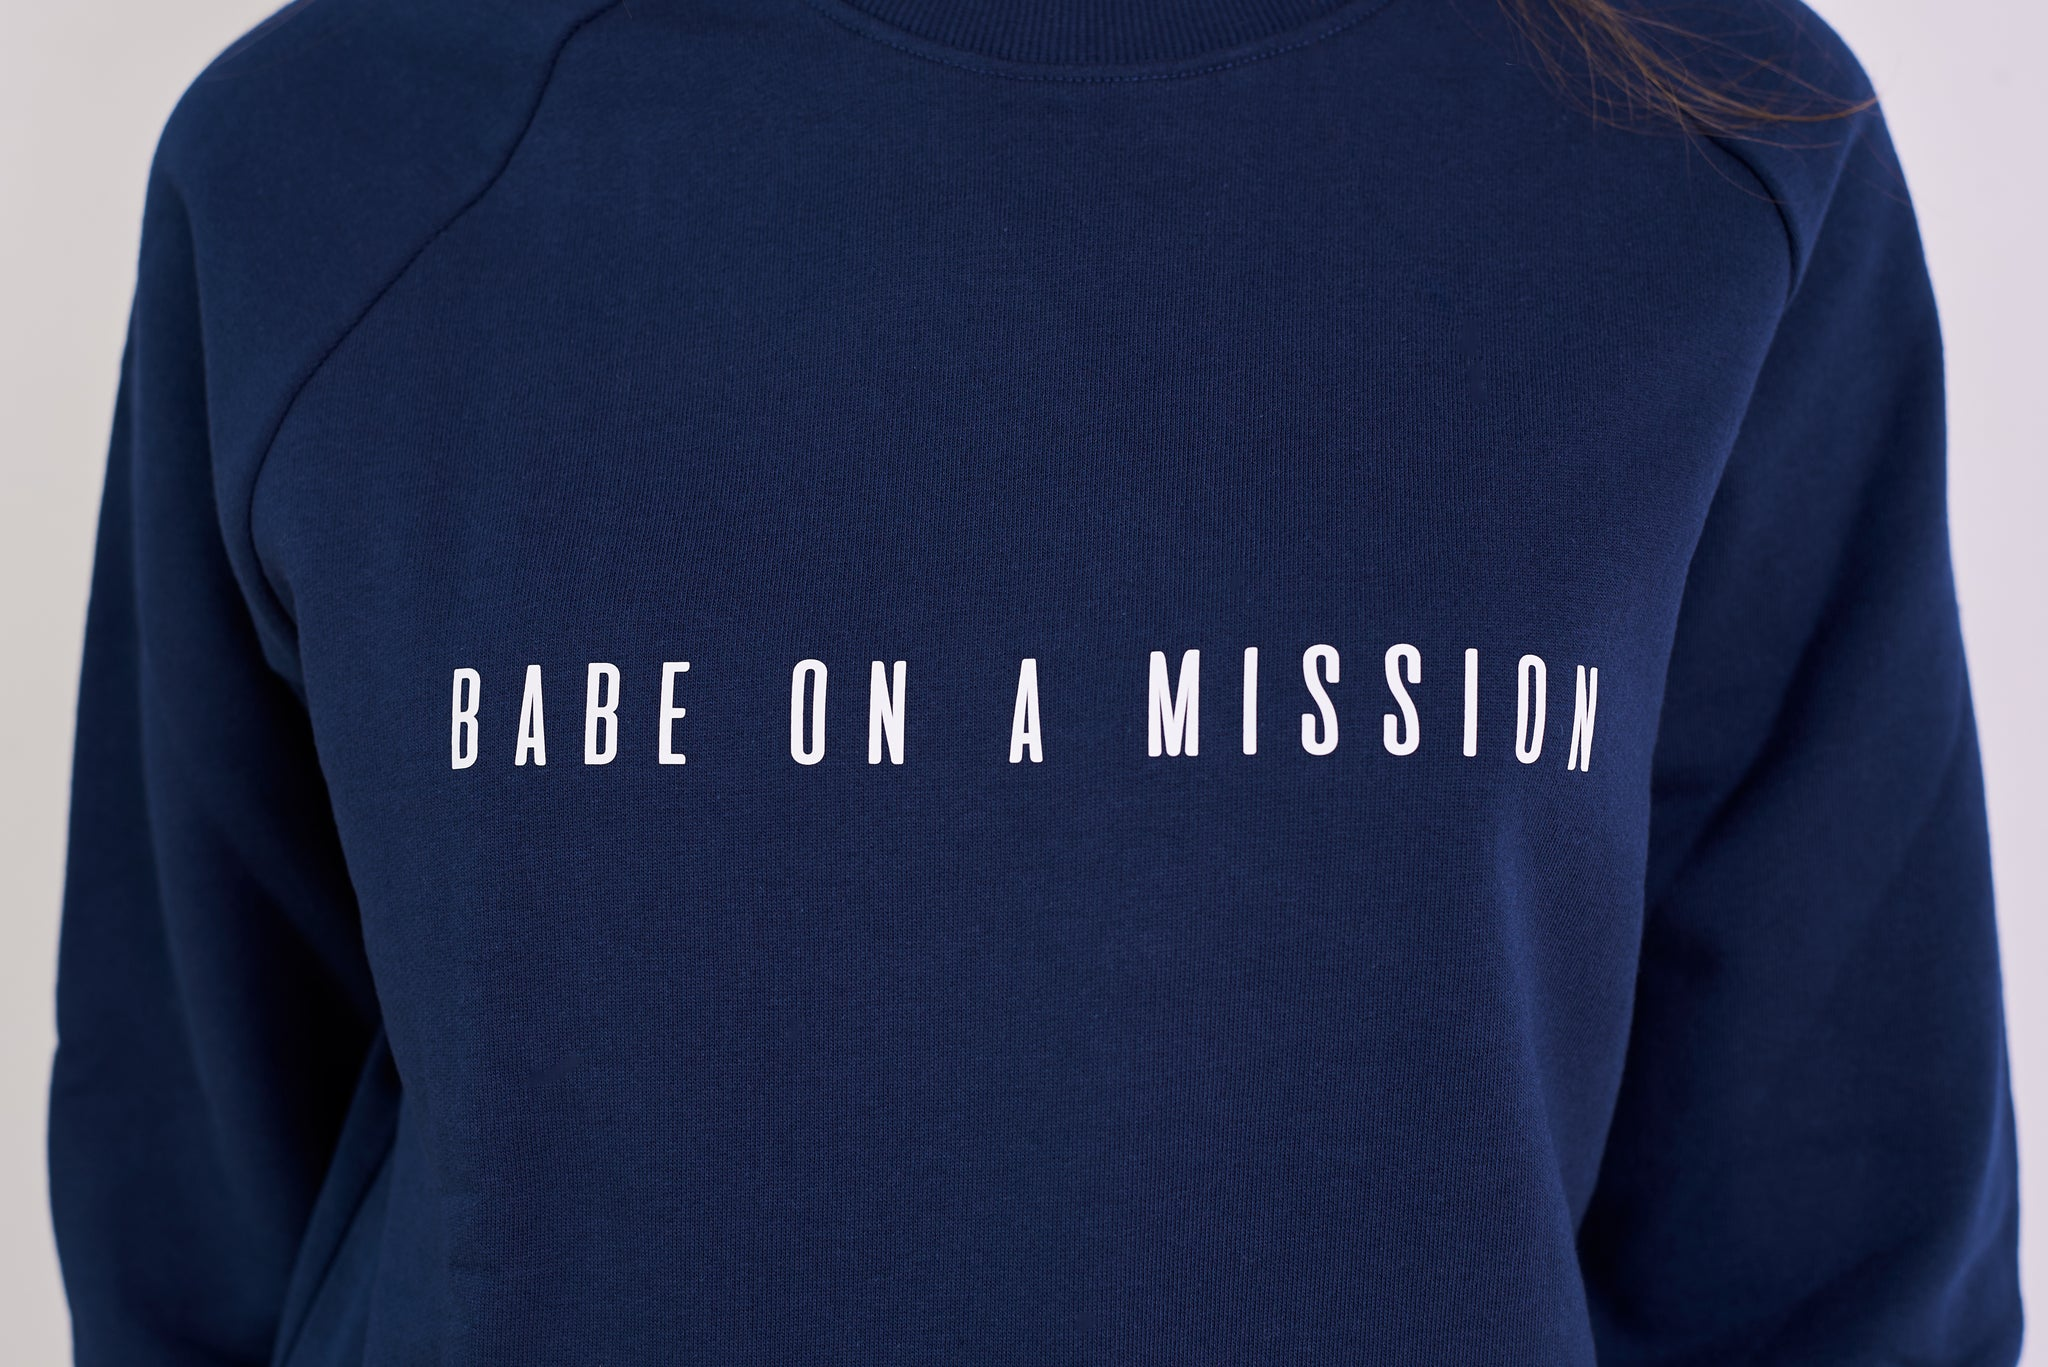 BABE ON A MISSION ORGANIC COTTON ECO-FRIENDLY JUMPER IN NAVY BLUE